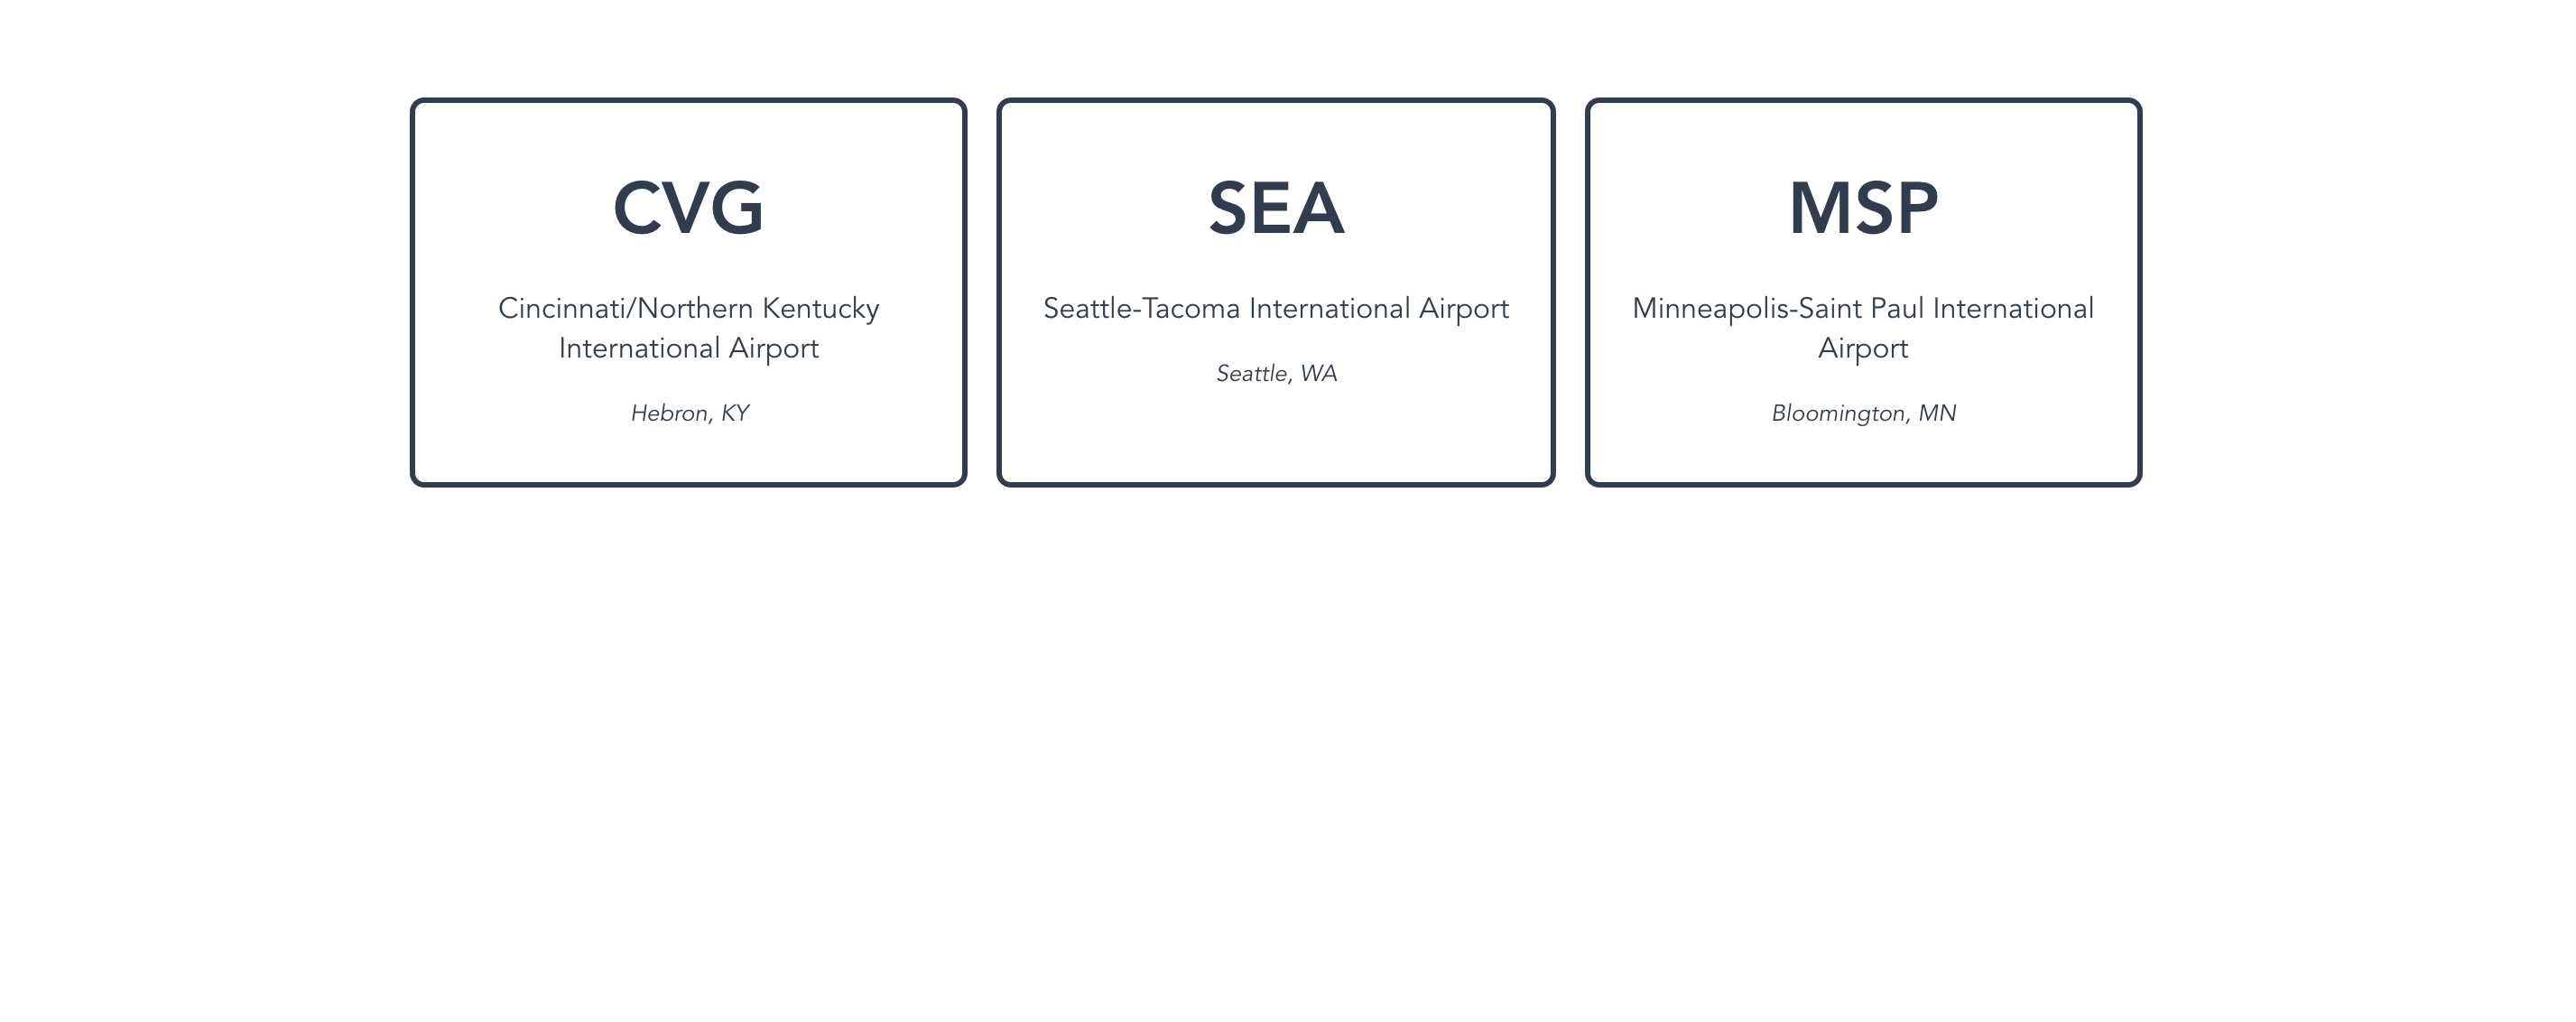 Three cards displaying information about airports, retrieved from the data/airports.js file.